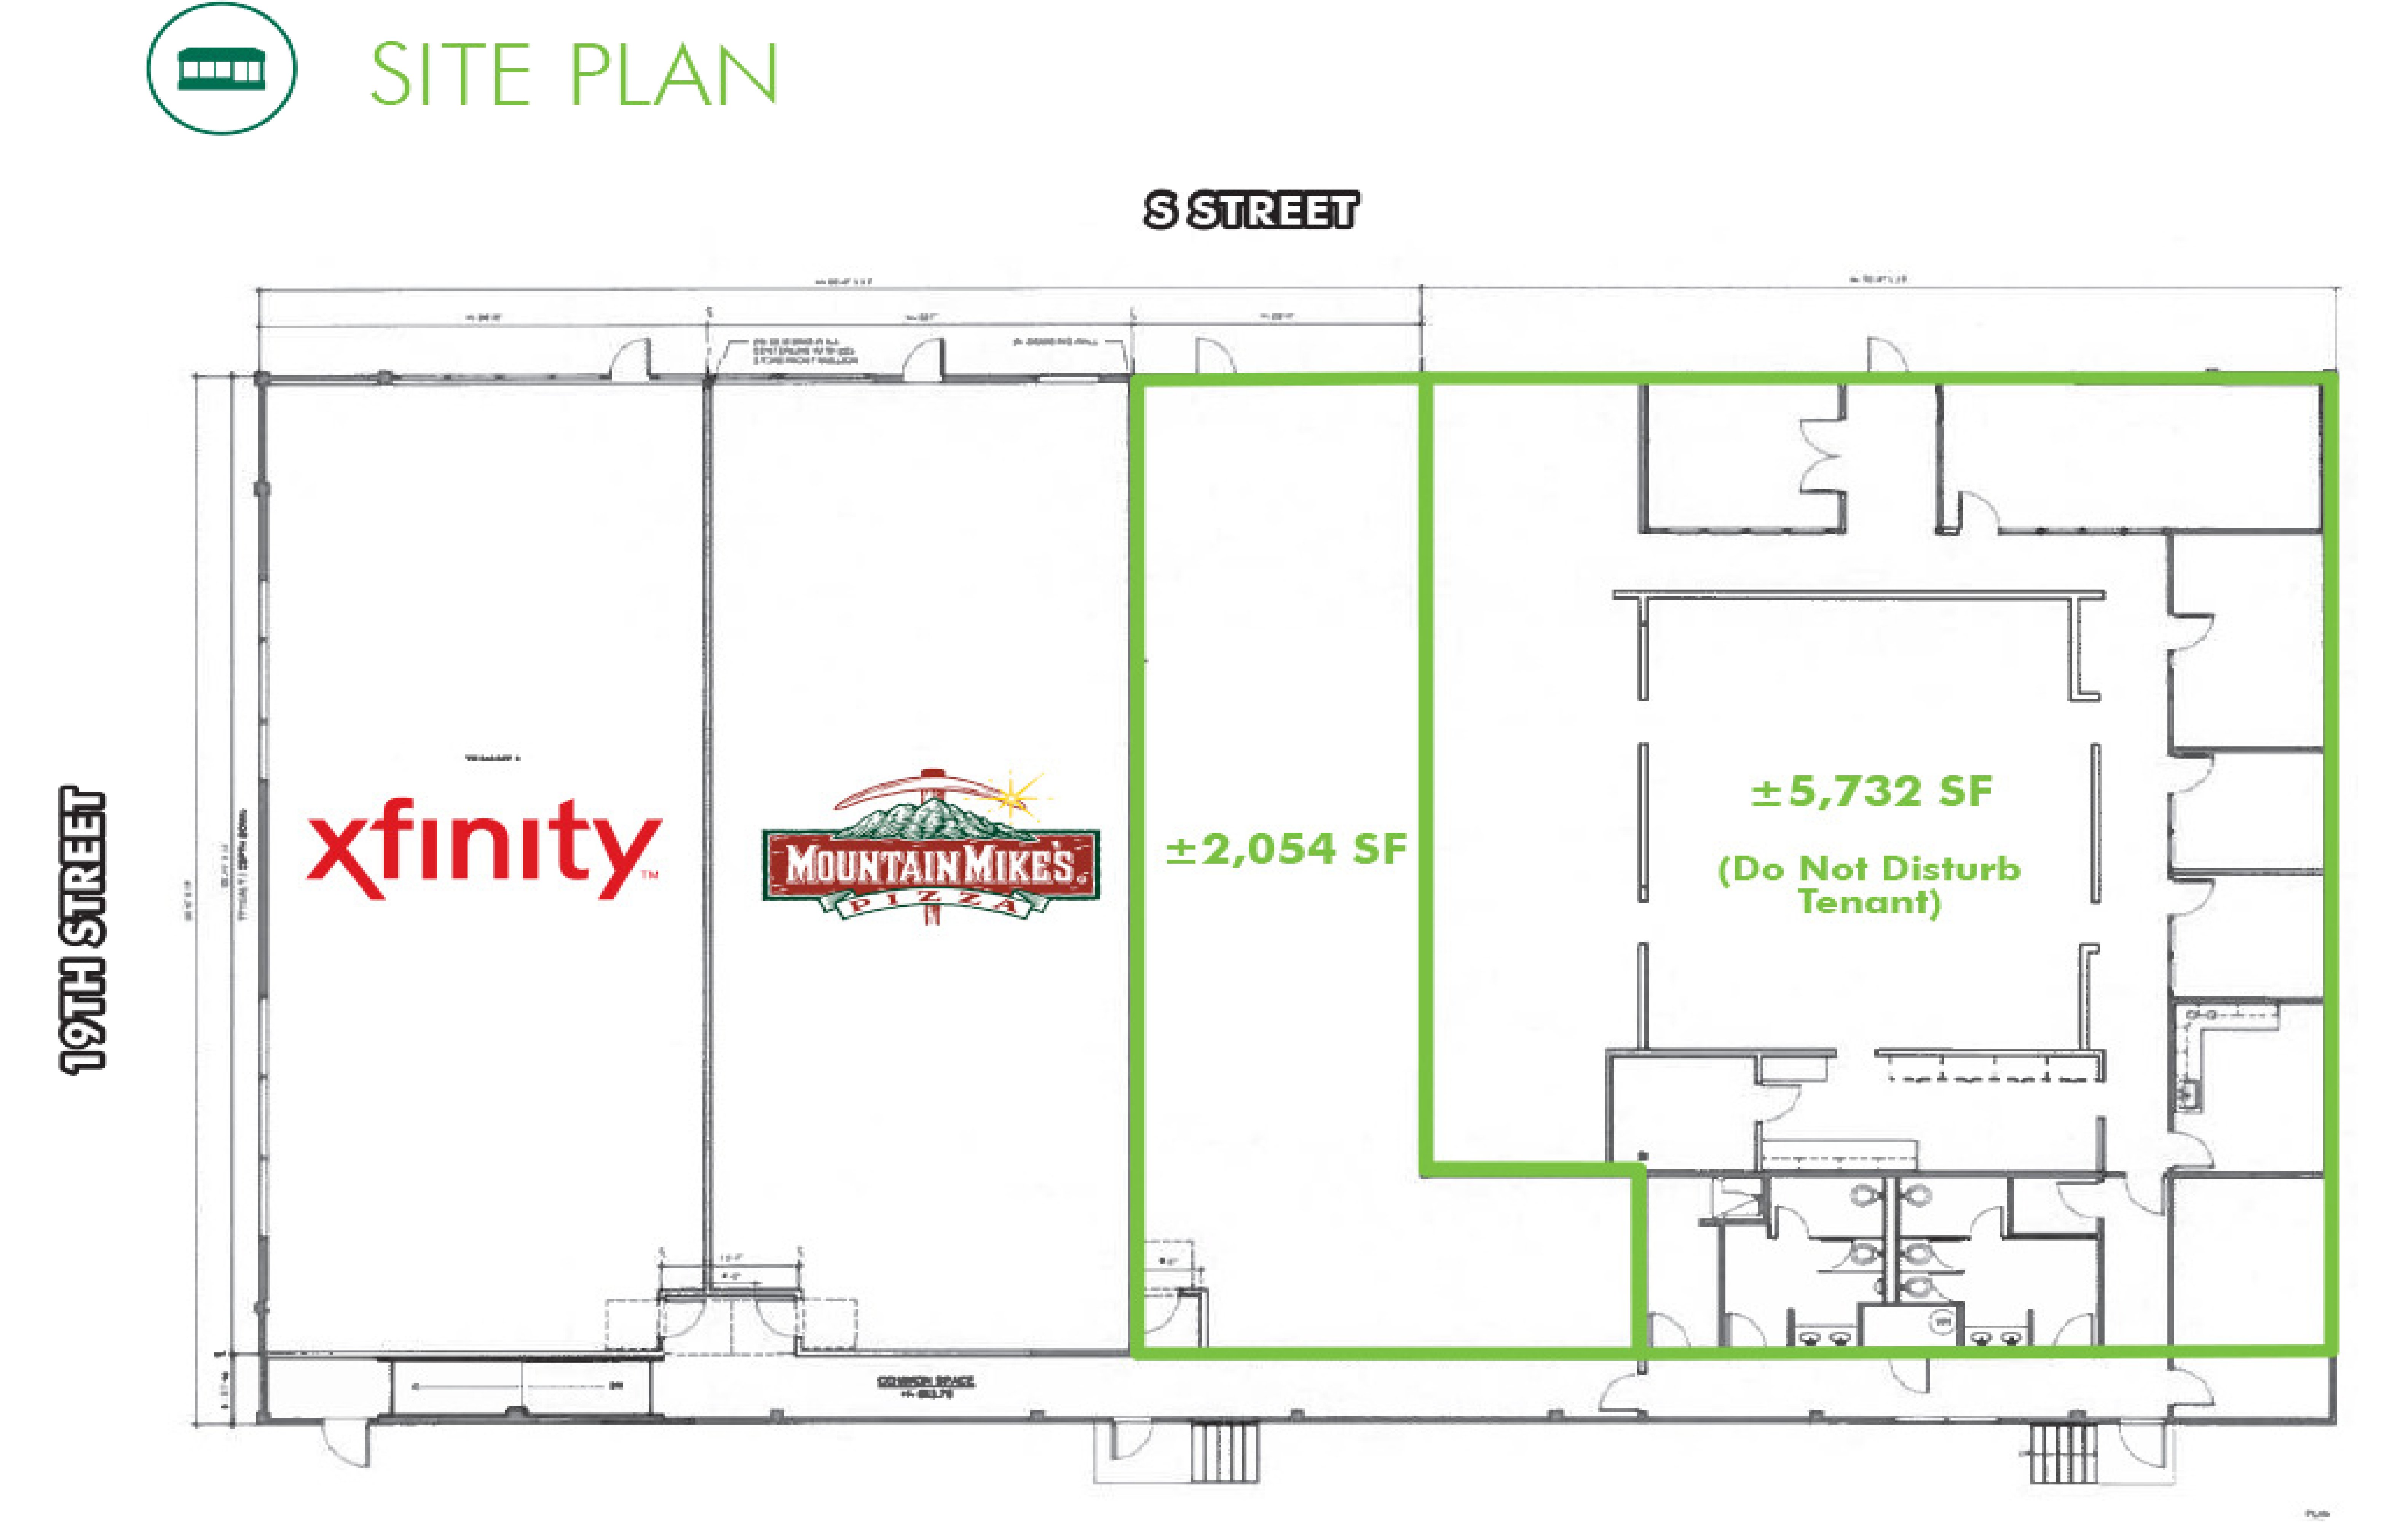 Redeveloped Midtown Building: site plan